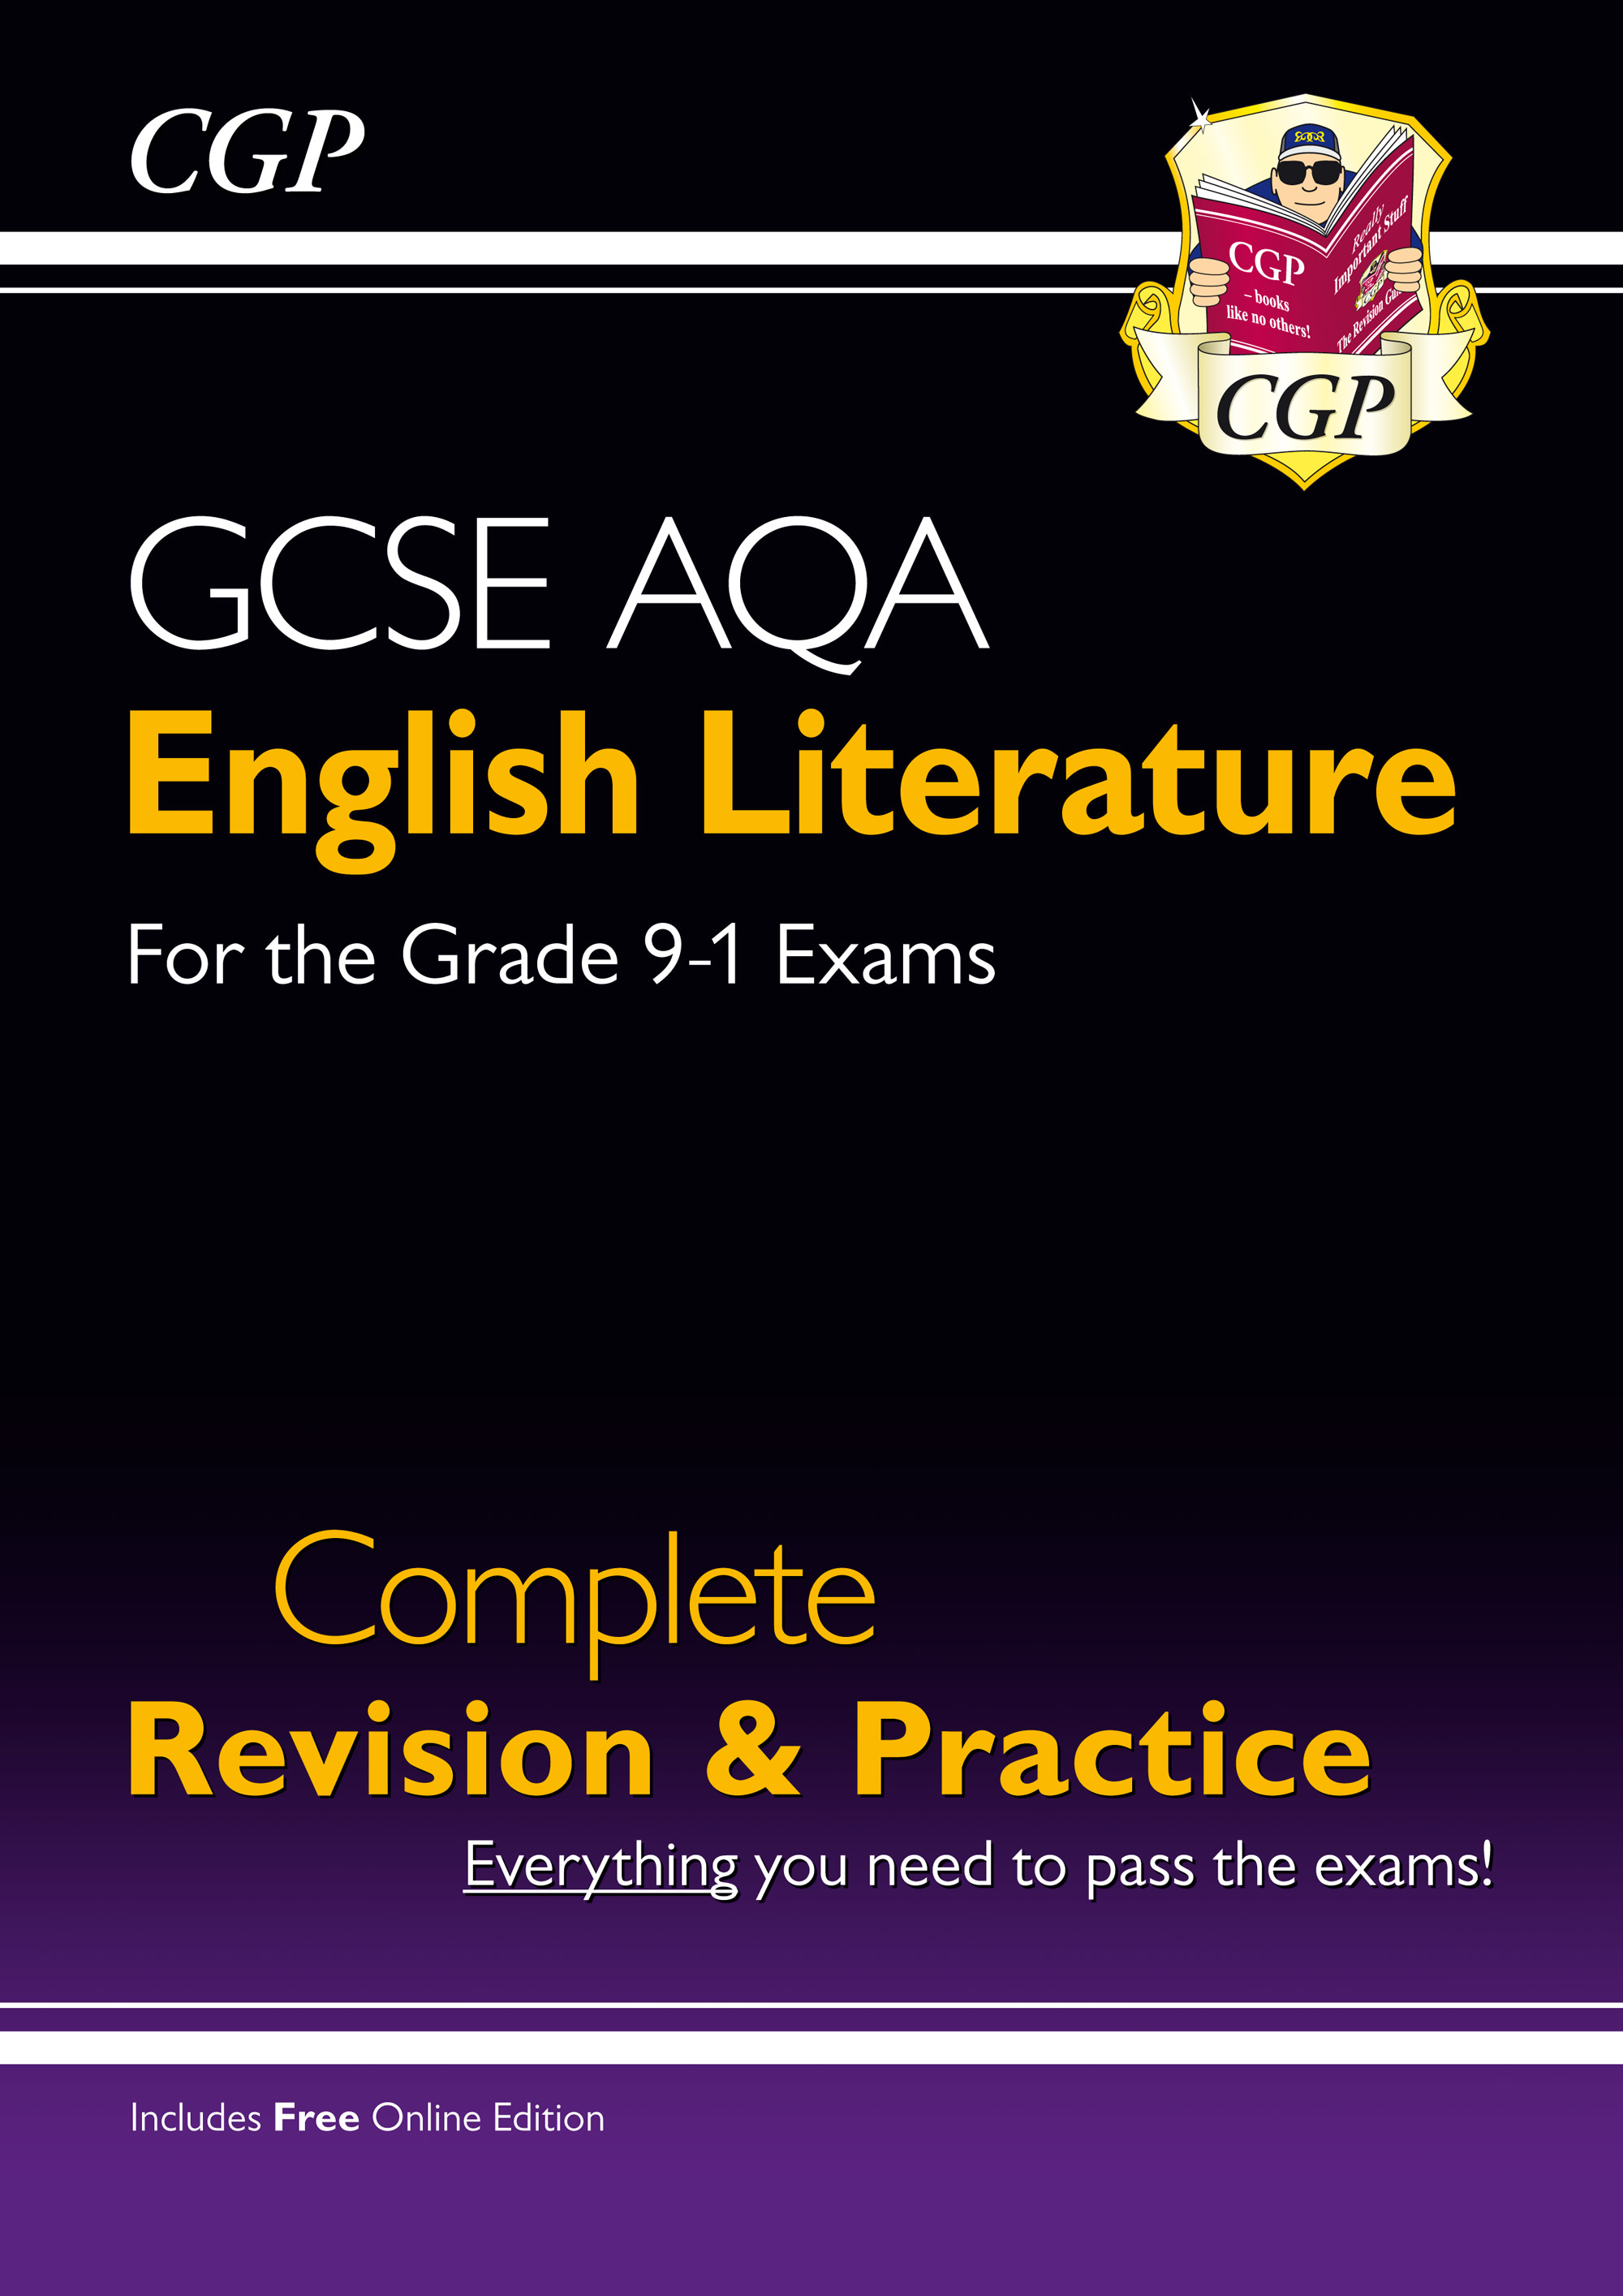 ELAS41 - GCSE English Literature AQA Complete Revision & Practice - Grade 9-1 (with Online Edition)